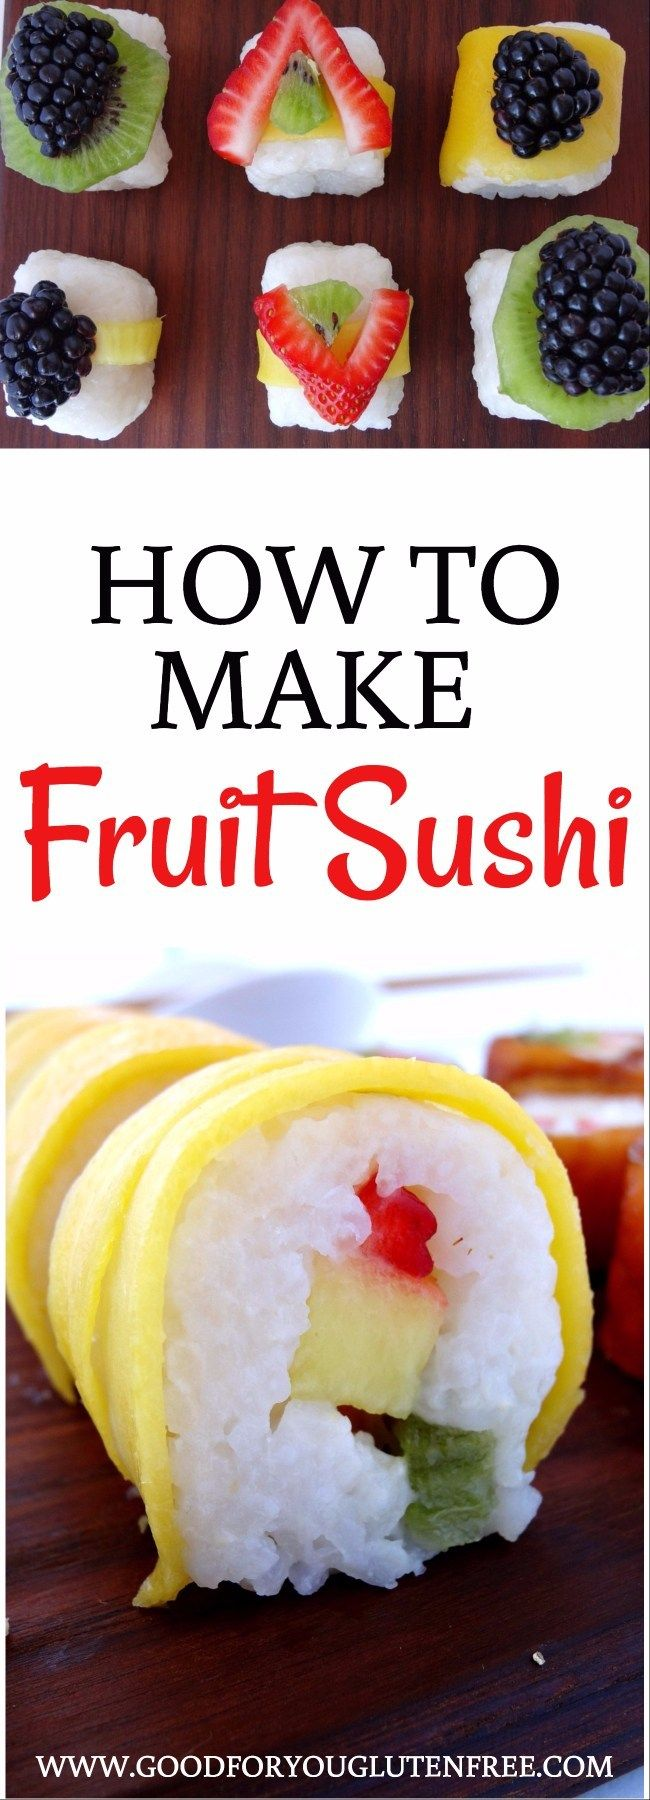 How to Make Gluten-Free Fruit Sushi